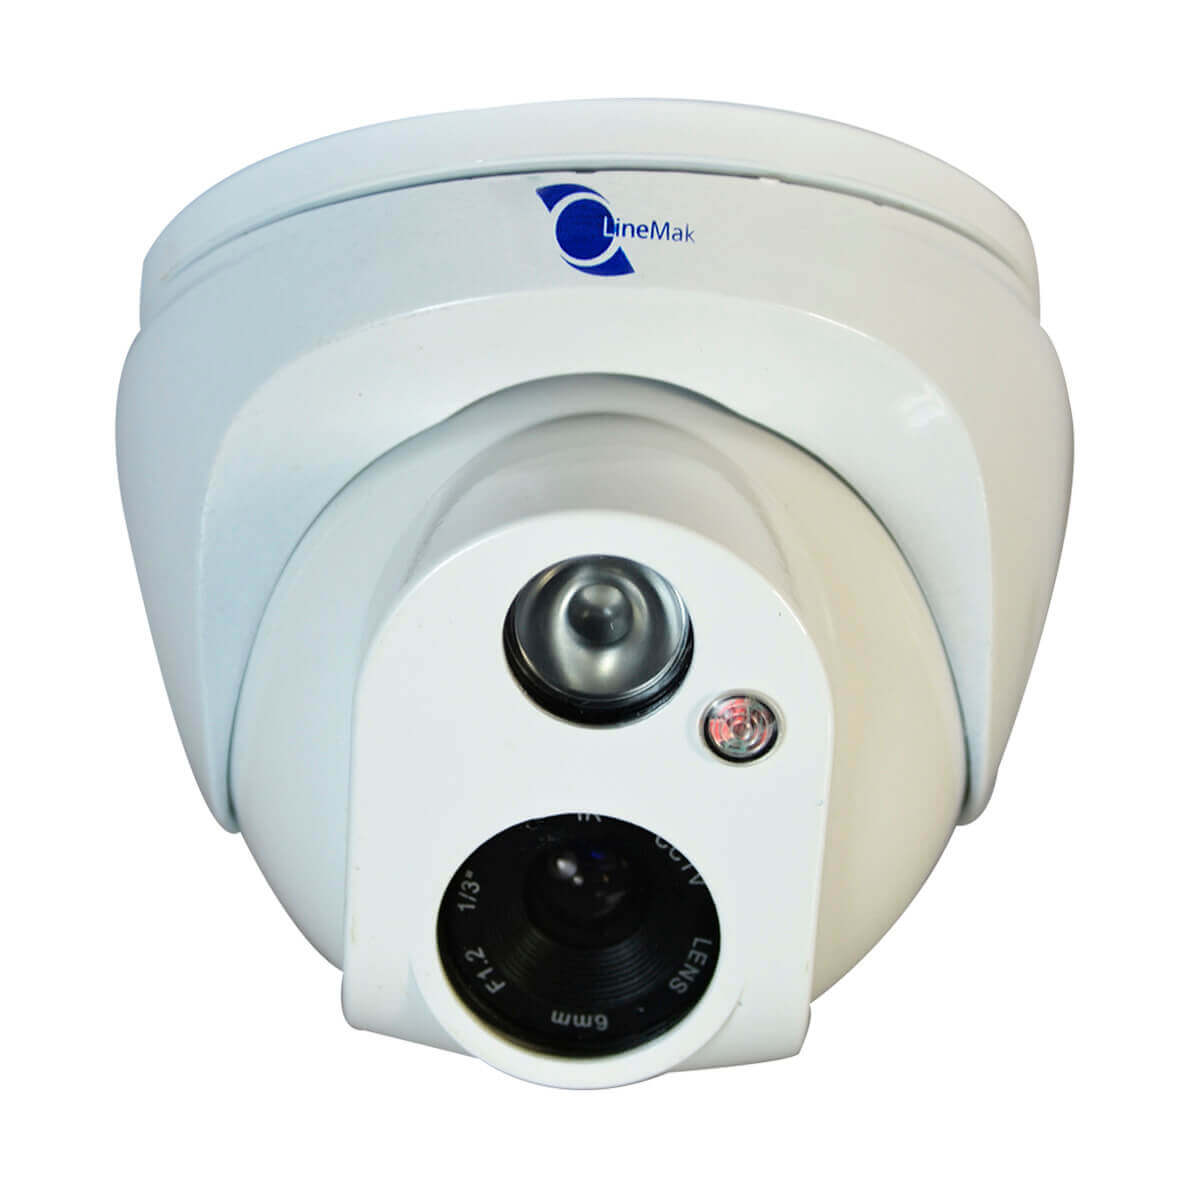 Camara tipo domo, HD CCD 1/4, resolucion 700TVL, 1 LED Array, 30m IR